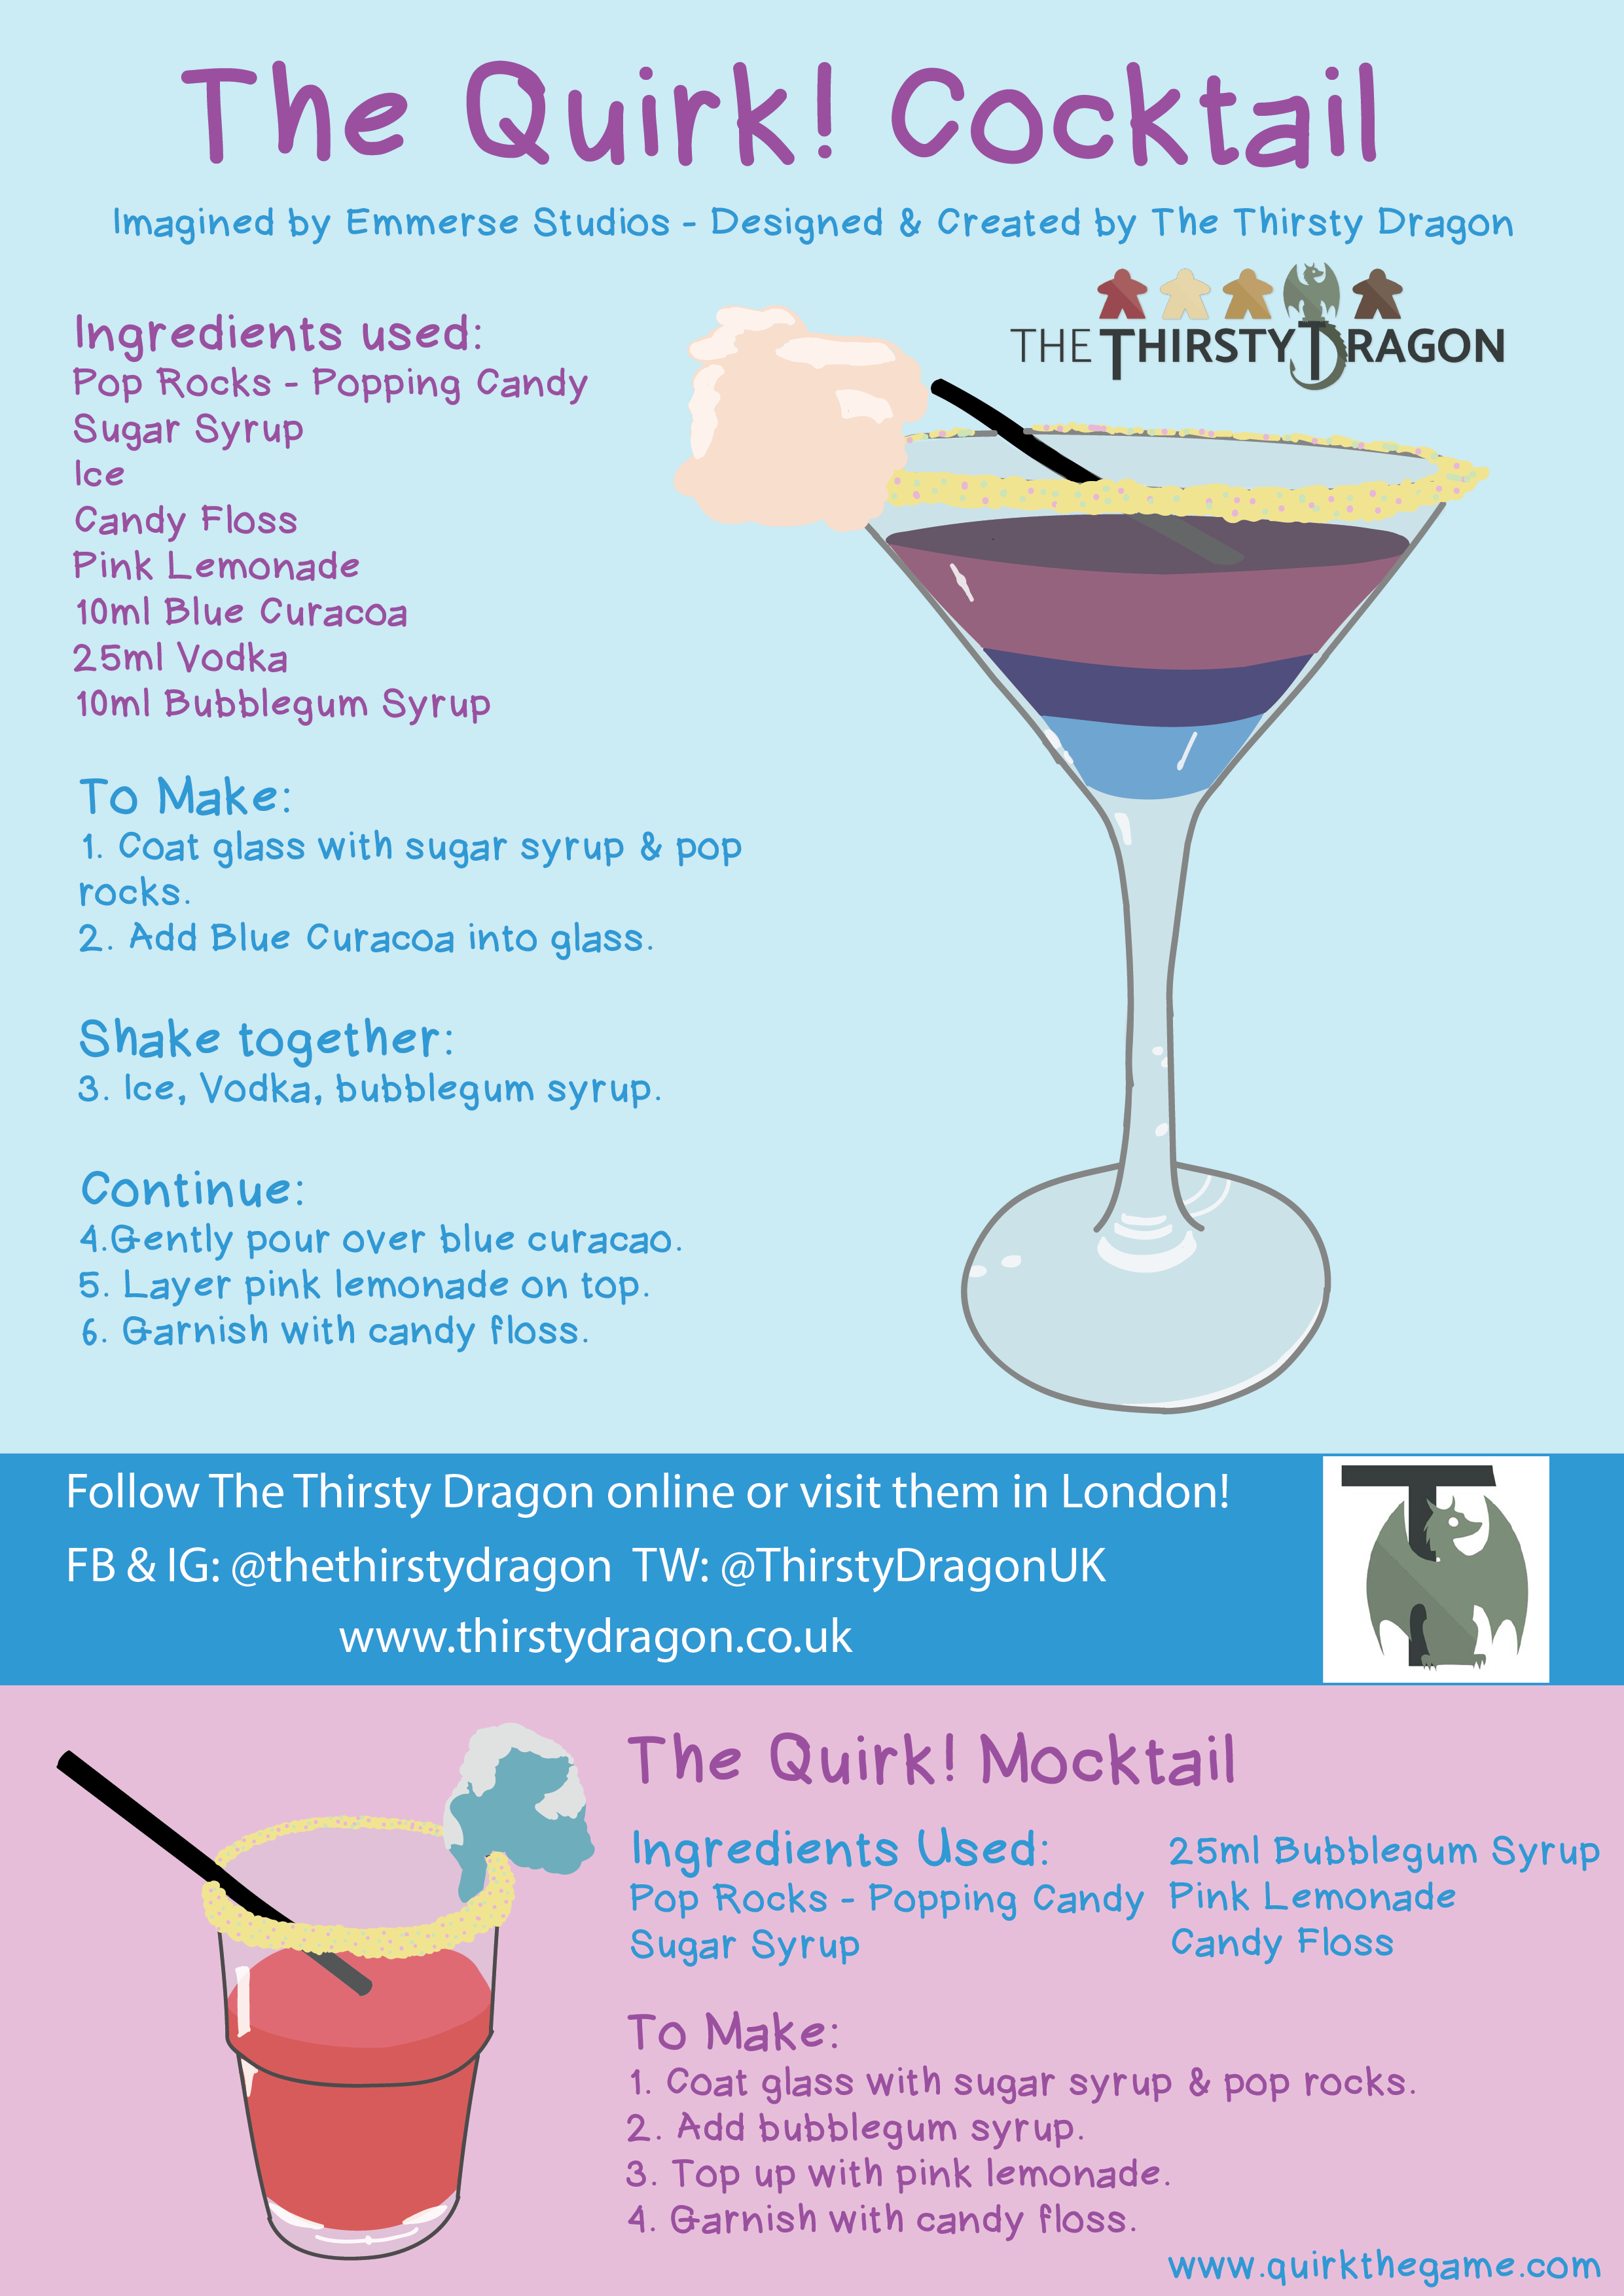 The Quirk Cocktail